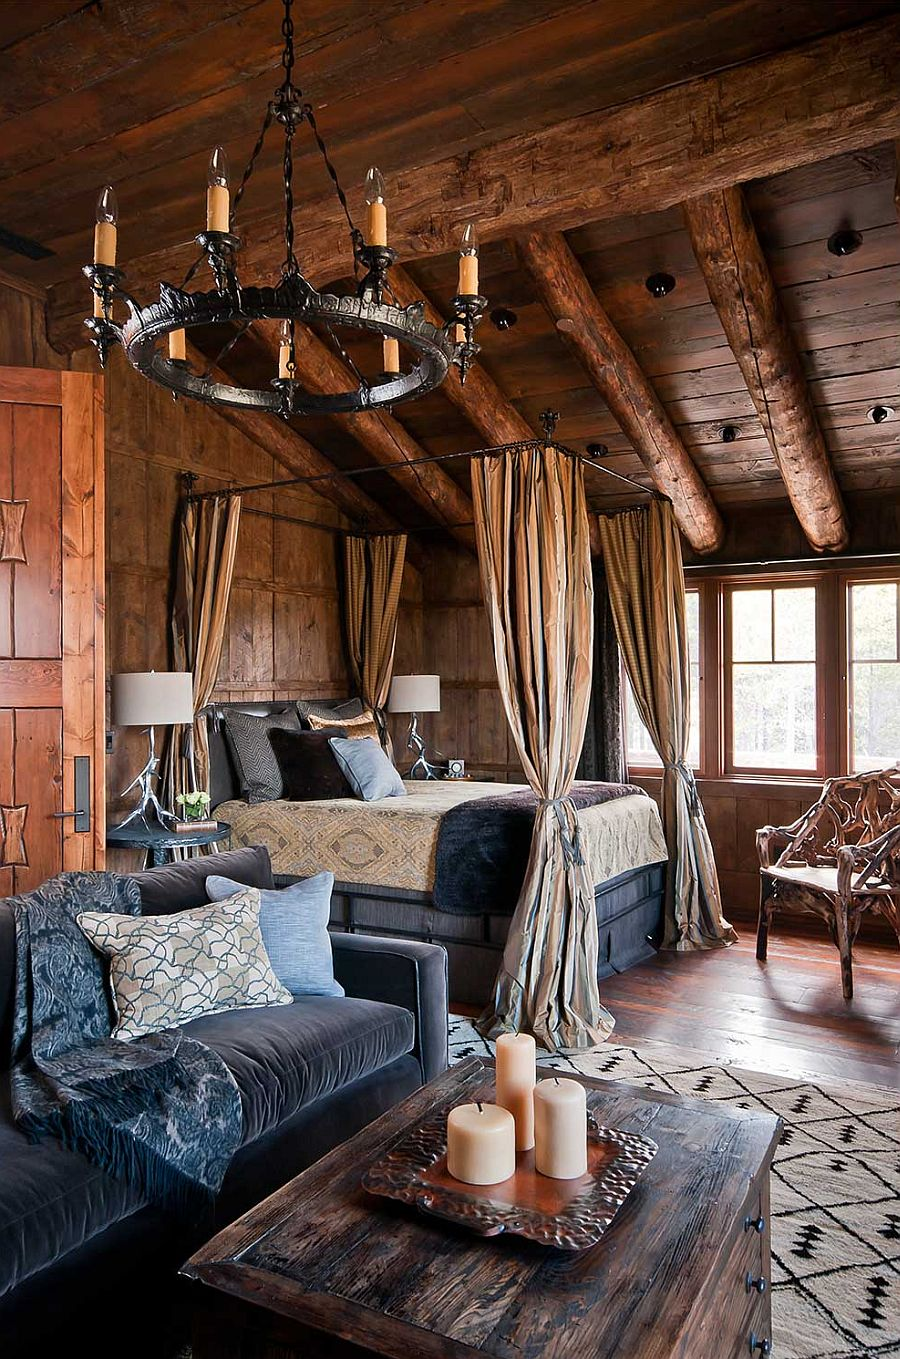 Dancing hearts picture perfect hillside escape in montana for Modern log home interiors